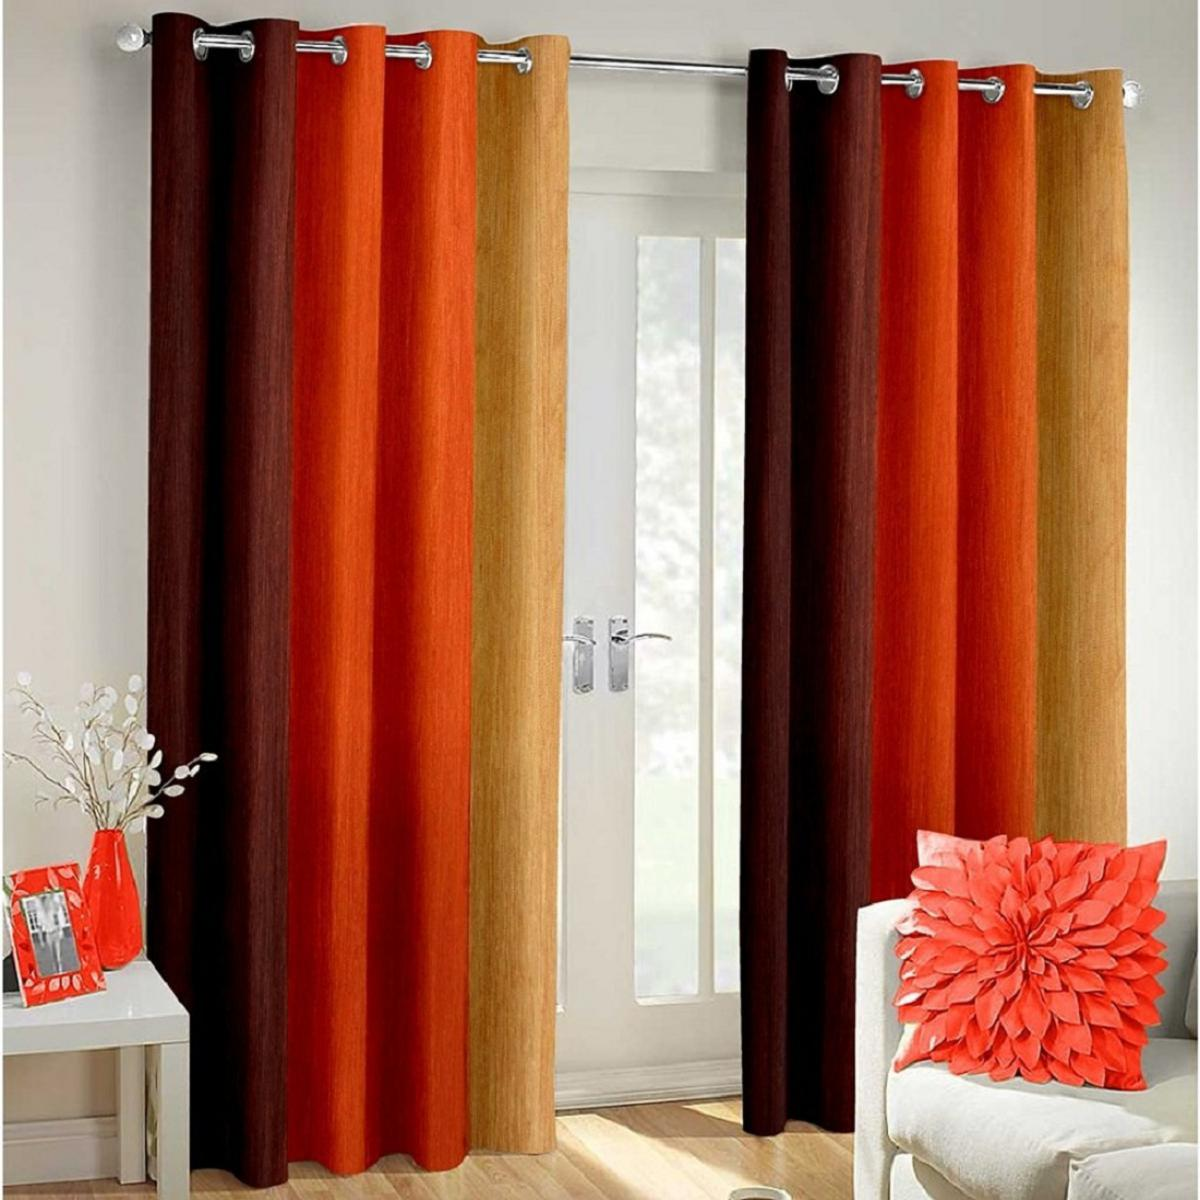 IndianOnlineMall shaded set of 2 long crush curtain(4x9ft)